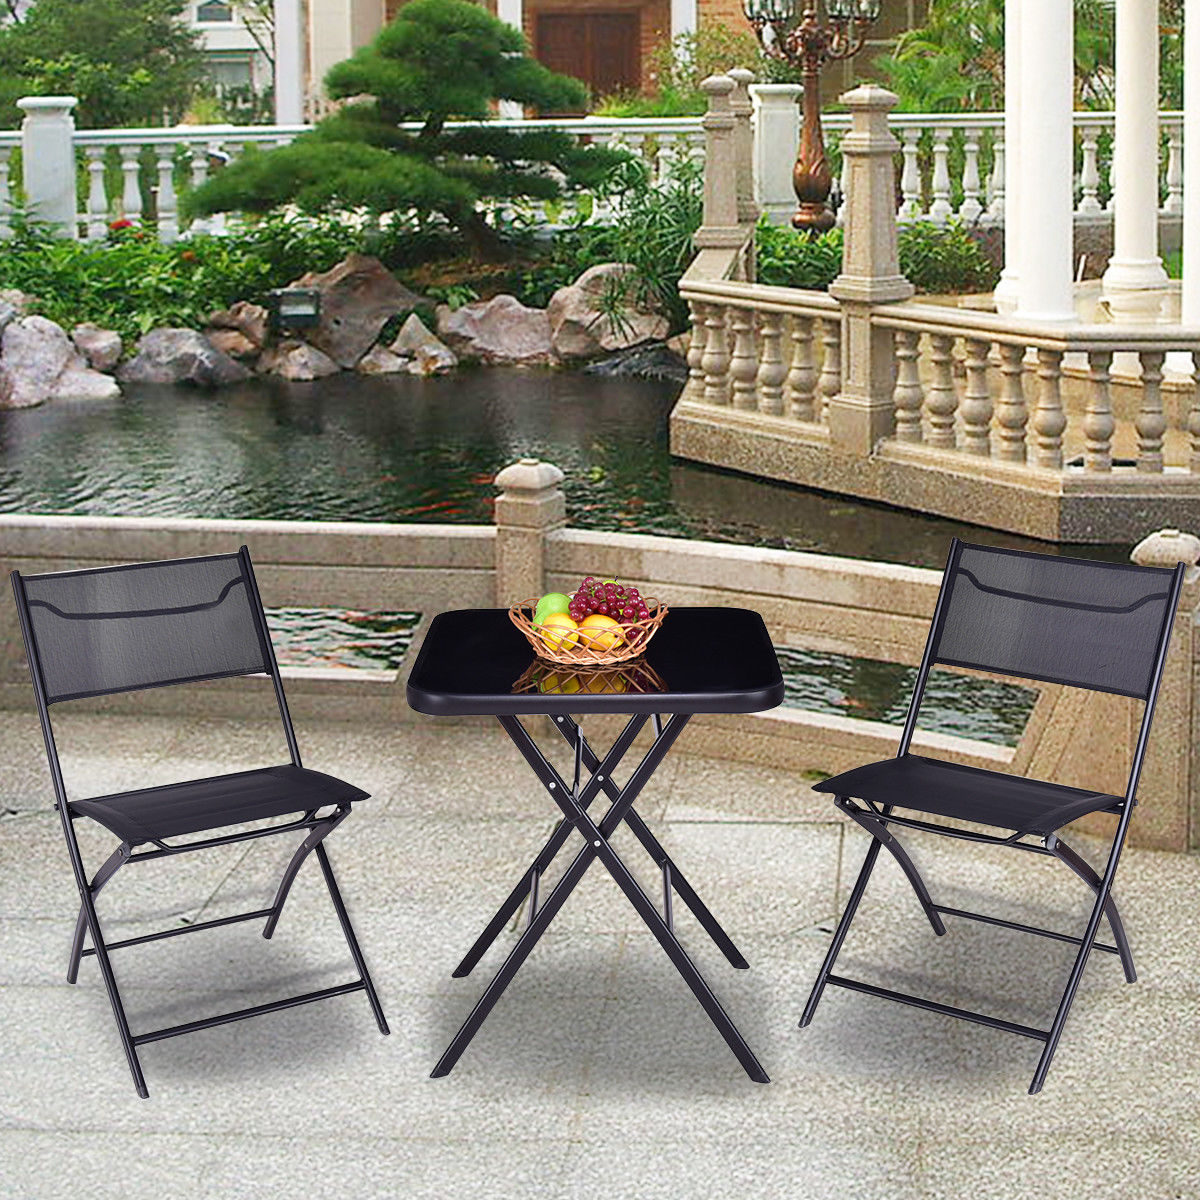 Gymax Folding 3PC Set Square Table And Chair Garden Outdoor Patio - image 1 de 7